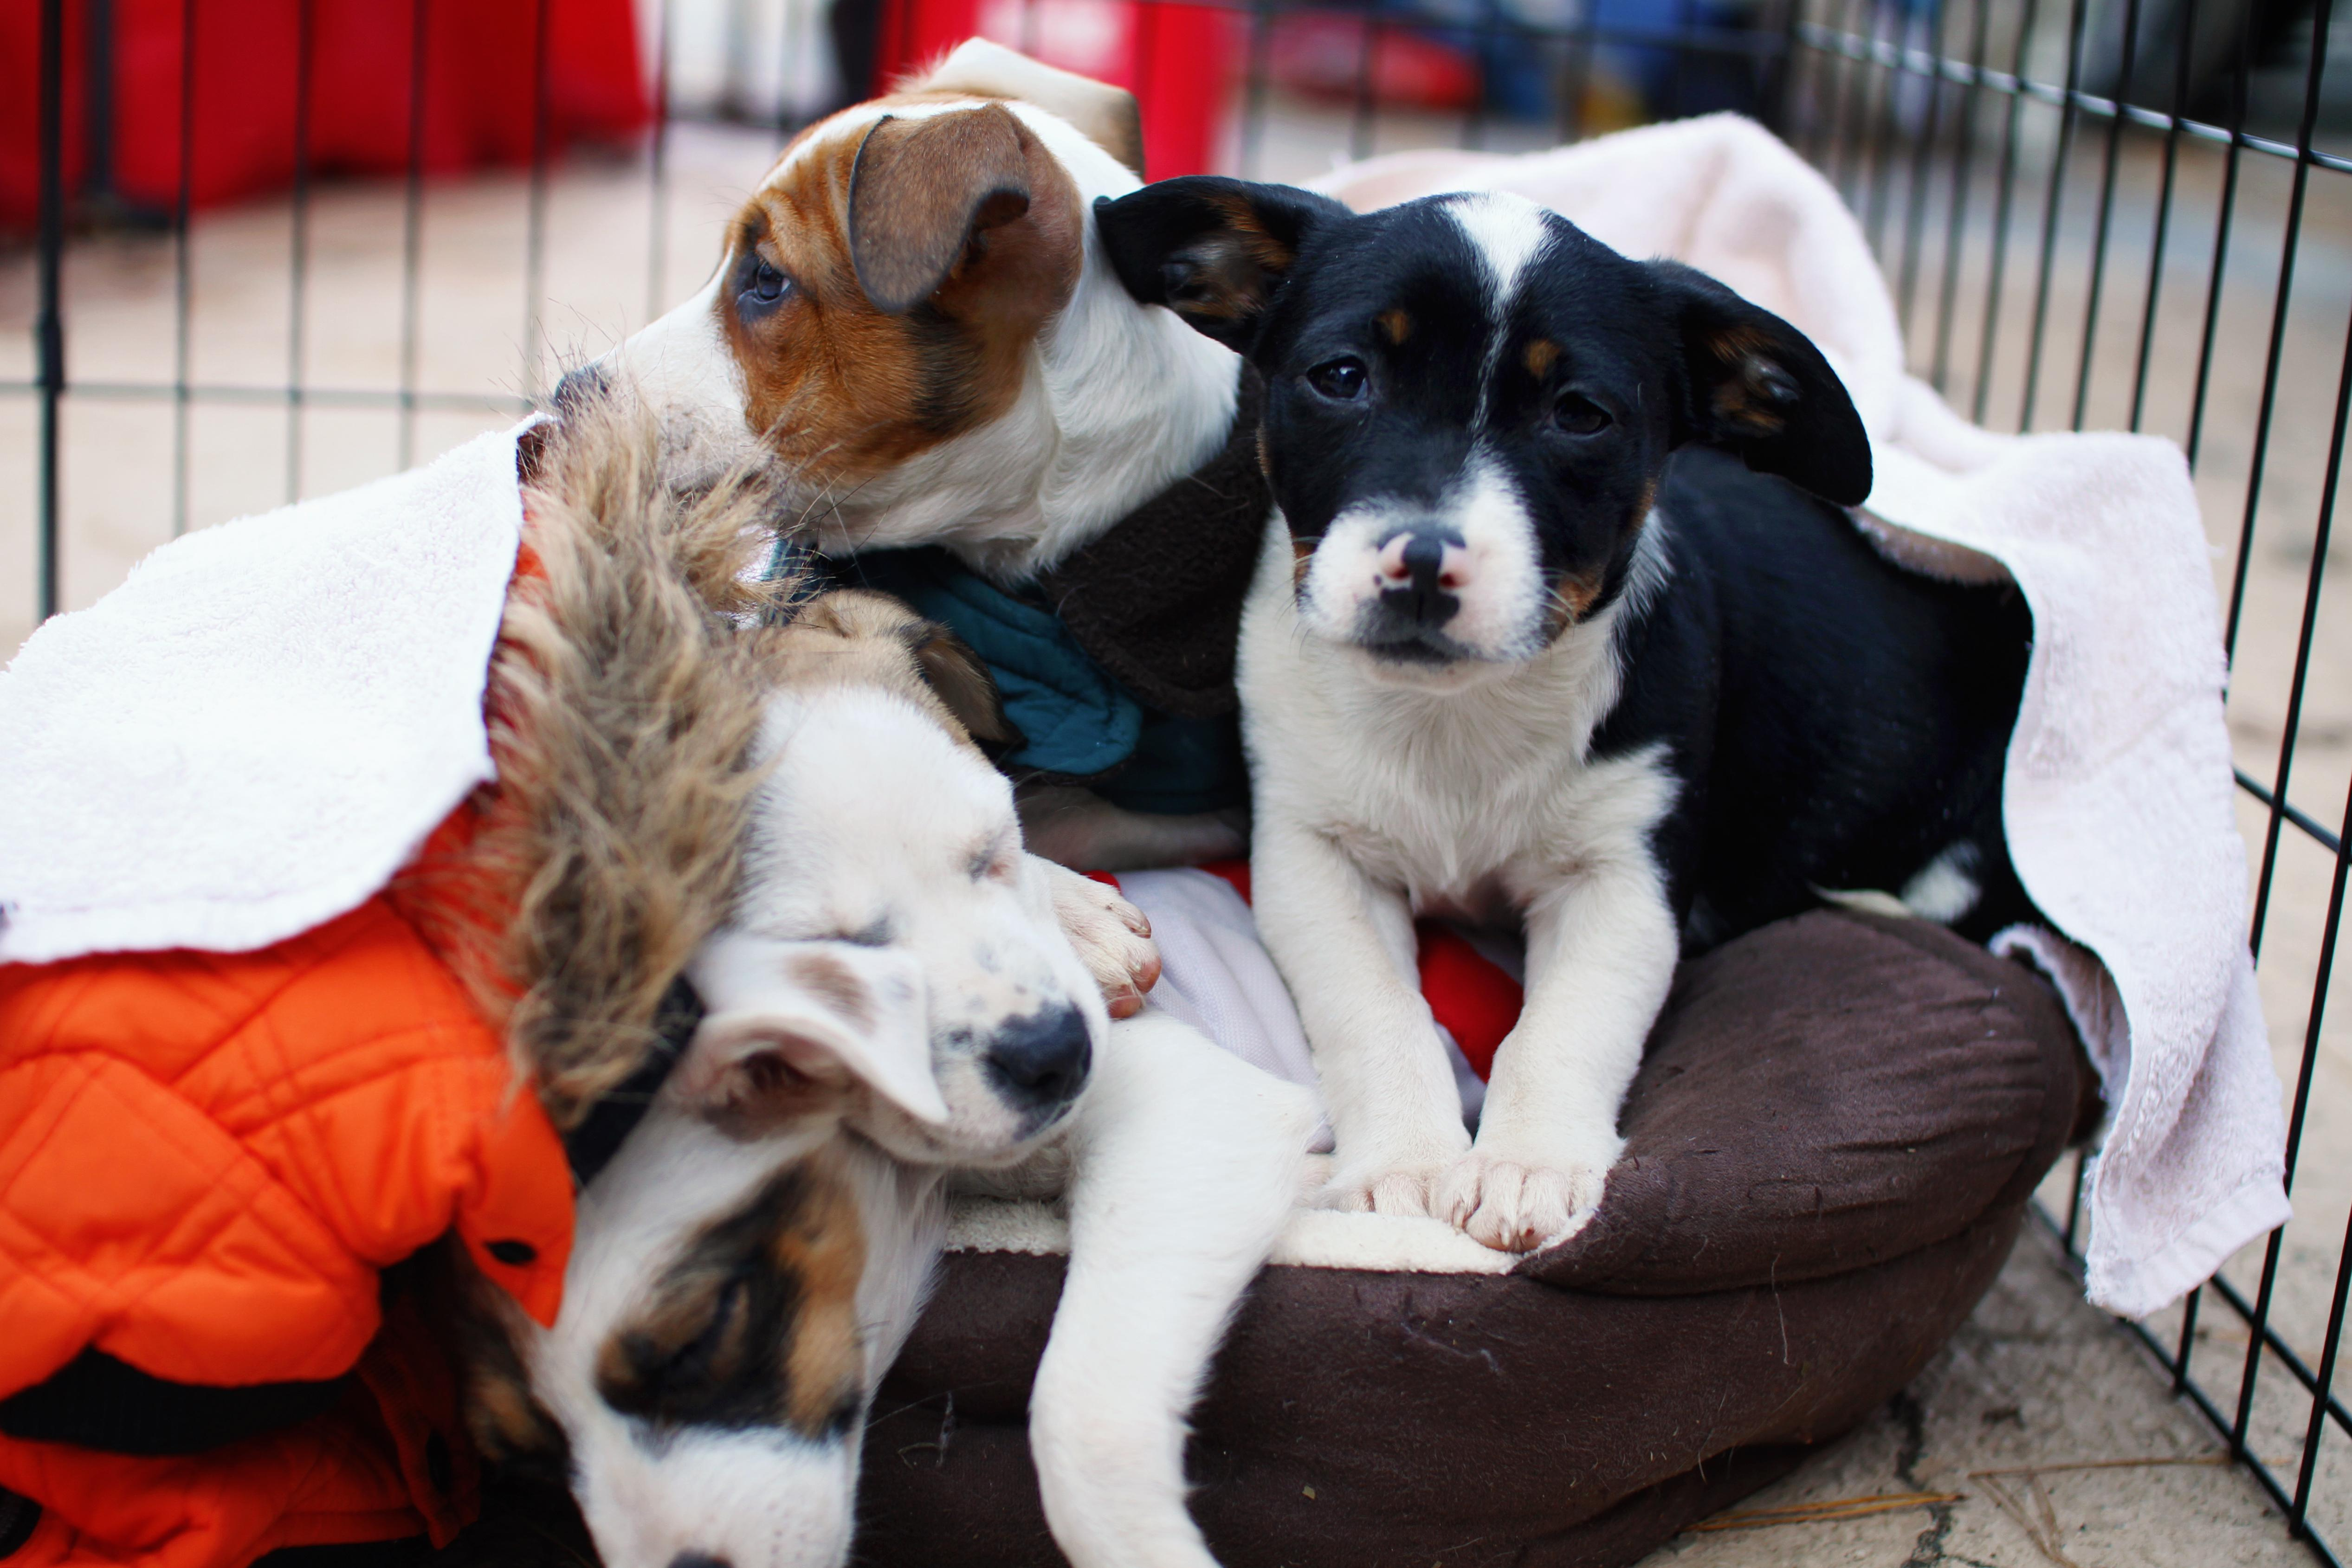 The scene at News 13's Pet Project event on Nov. 10, 2017, held at Camp Bow Wow in Arden. Forty-one dogs were adopted at the event and almost $400 was raised to benefit homeless animals at area shelters. (Photo credit: WLOS Staff)